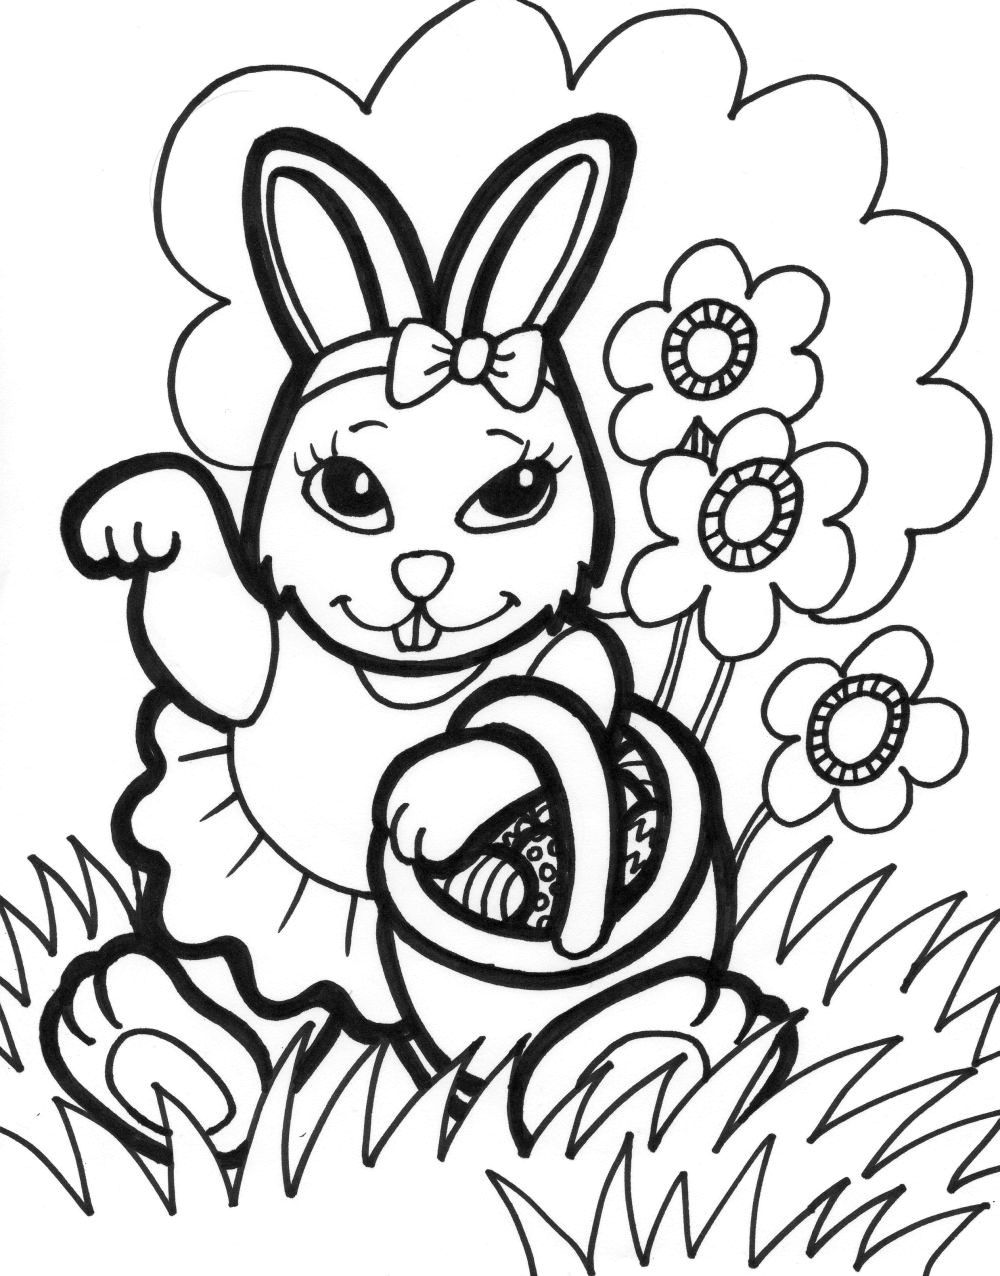 Cute Easter Coloring Pages ... - Pesquisa Google | ΠΑΣΧΑ | Pinterest ...